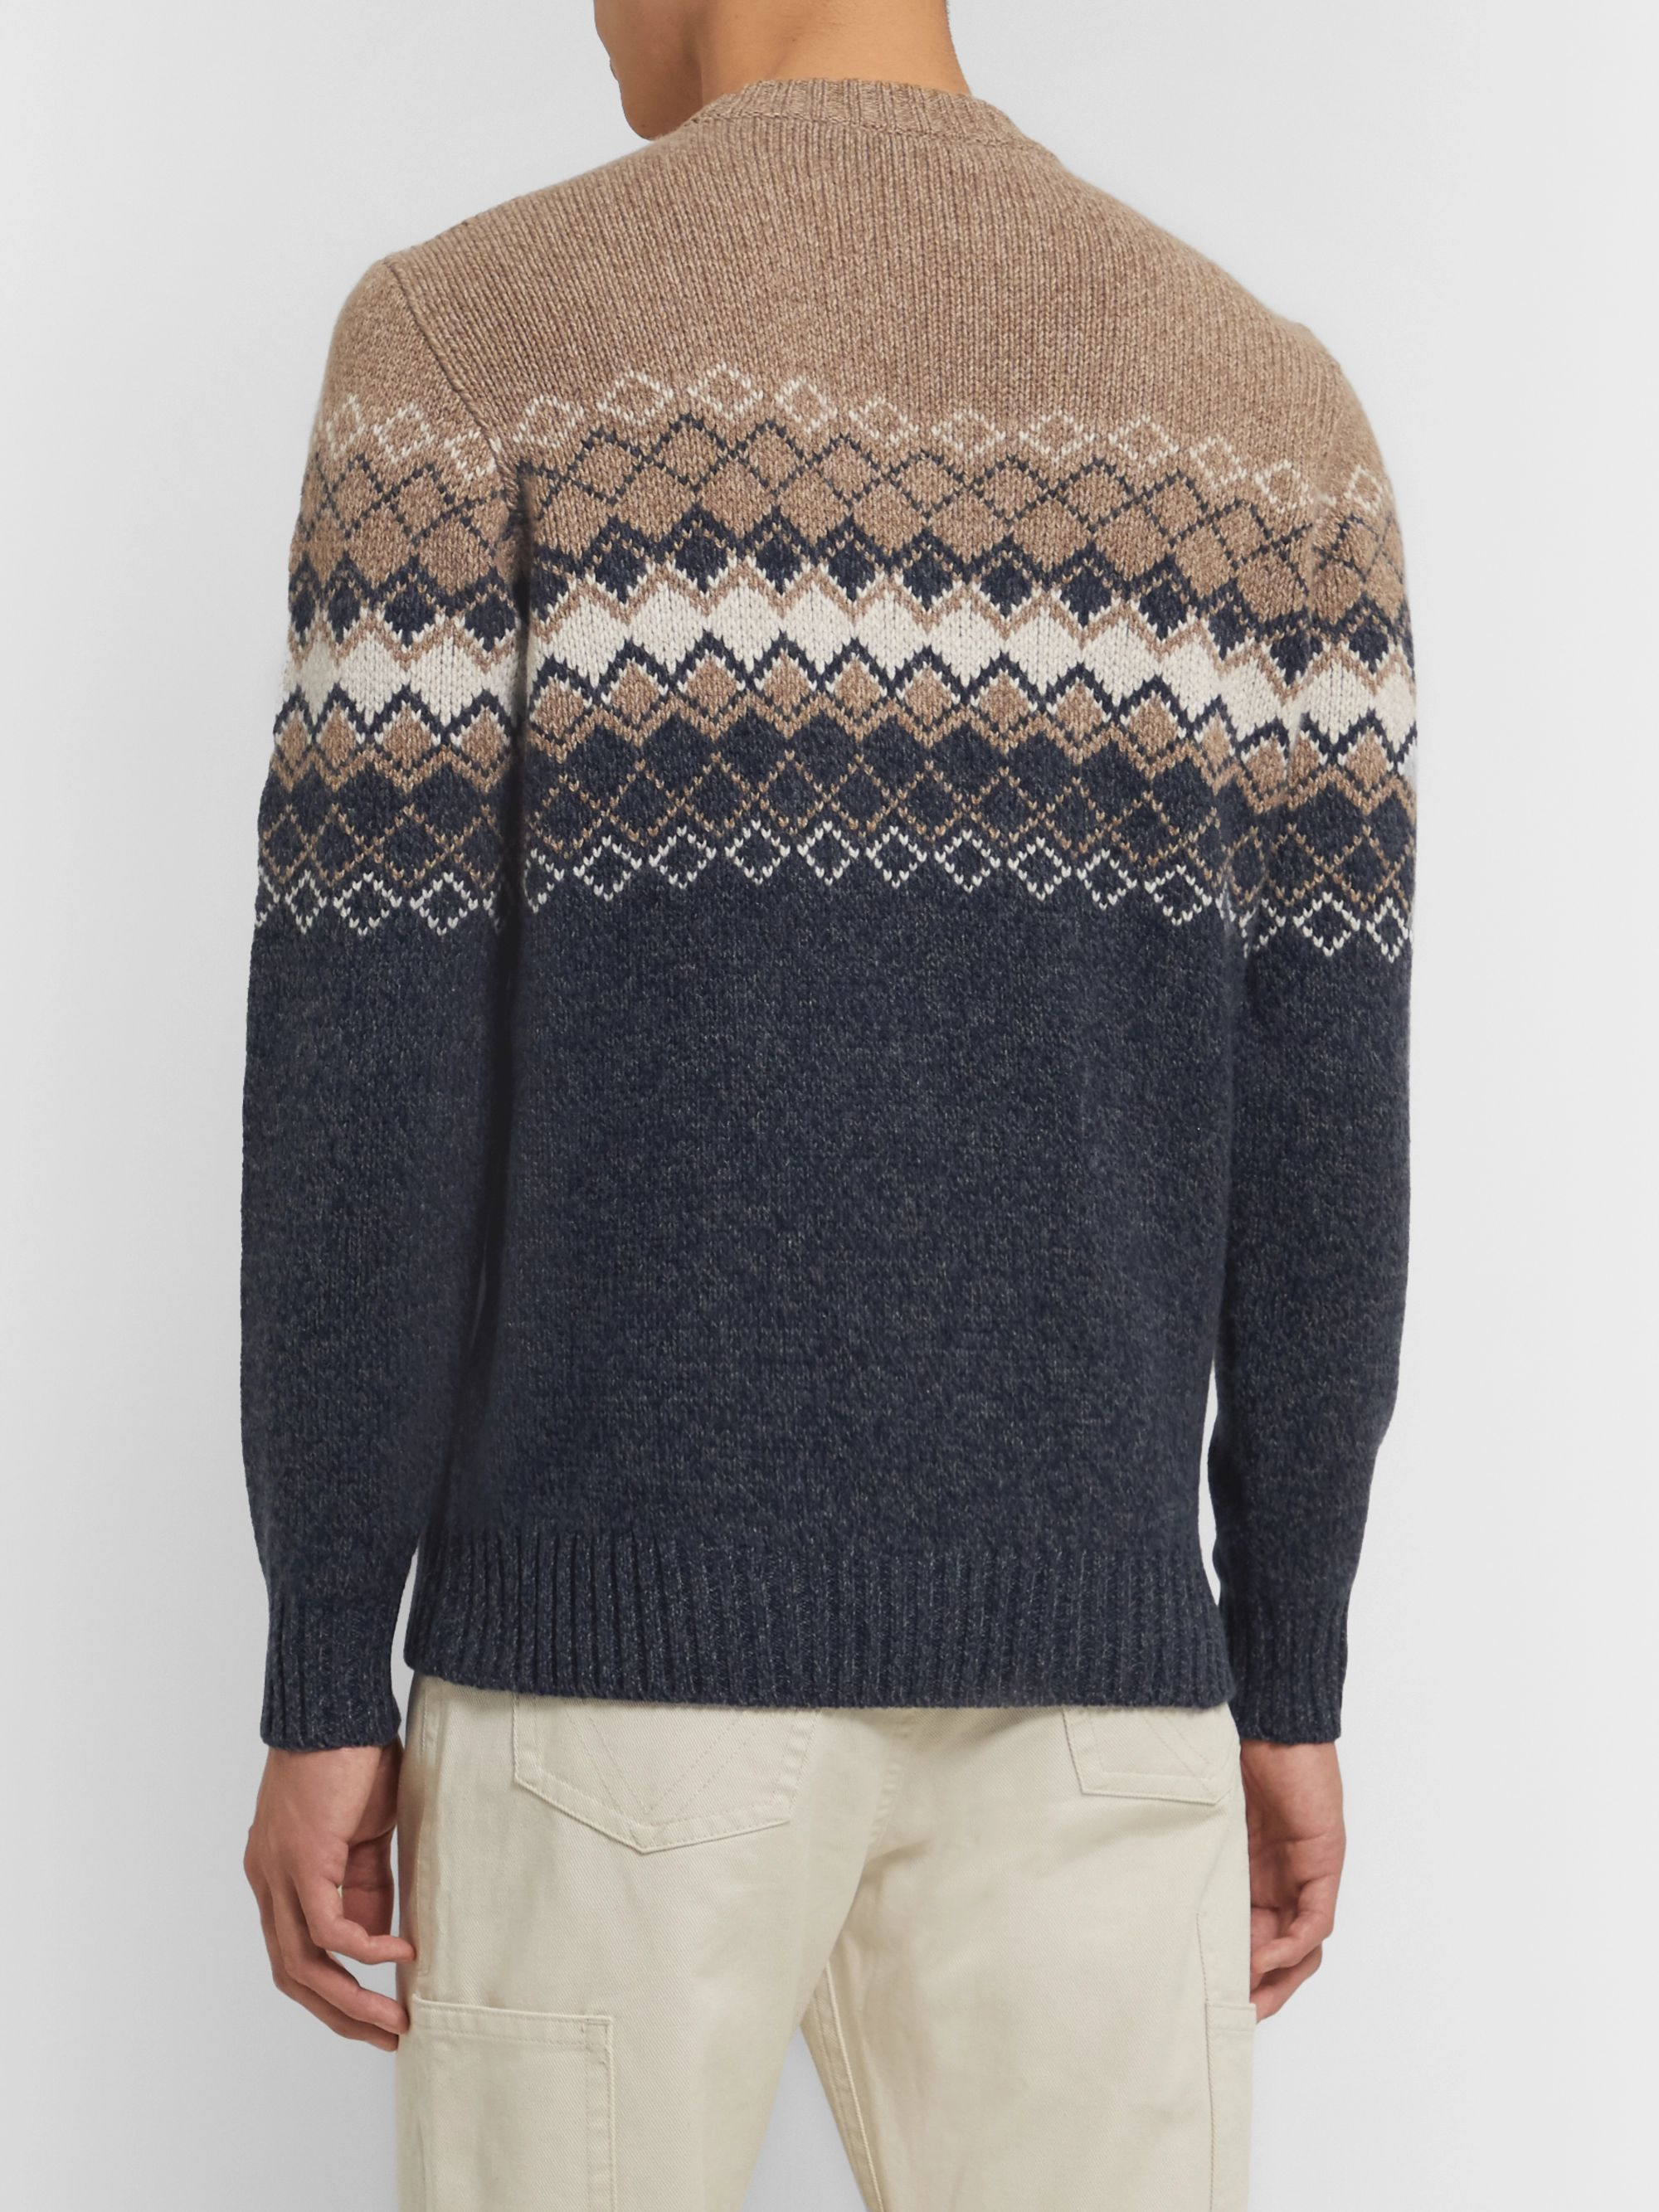 Loro Piana Fair Isle Baby Cashmere Sweater